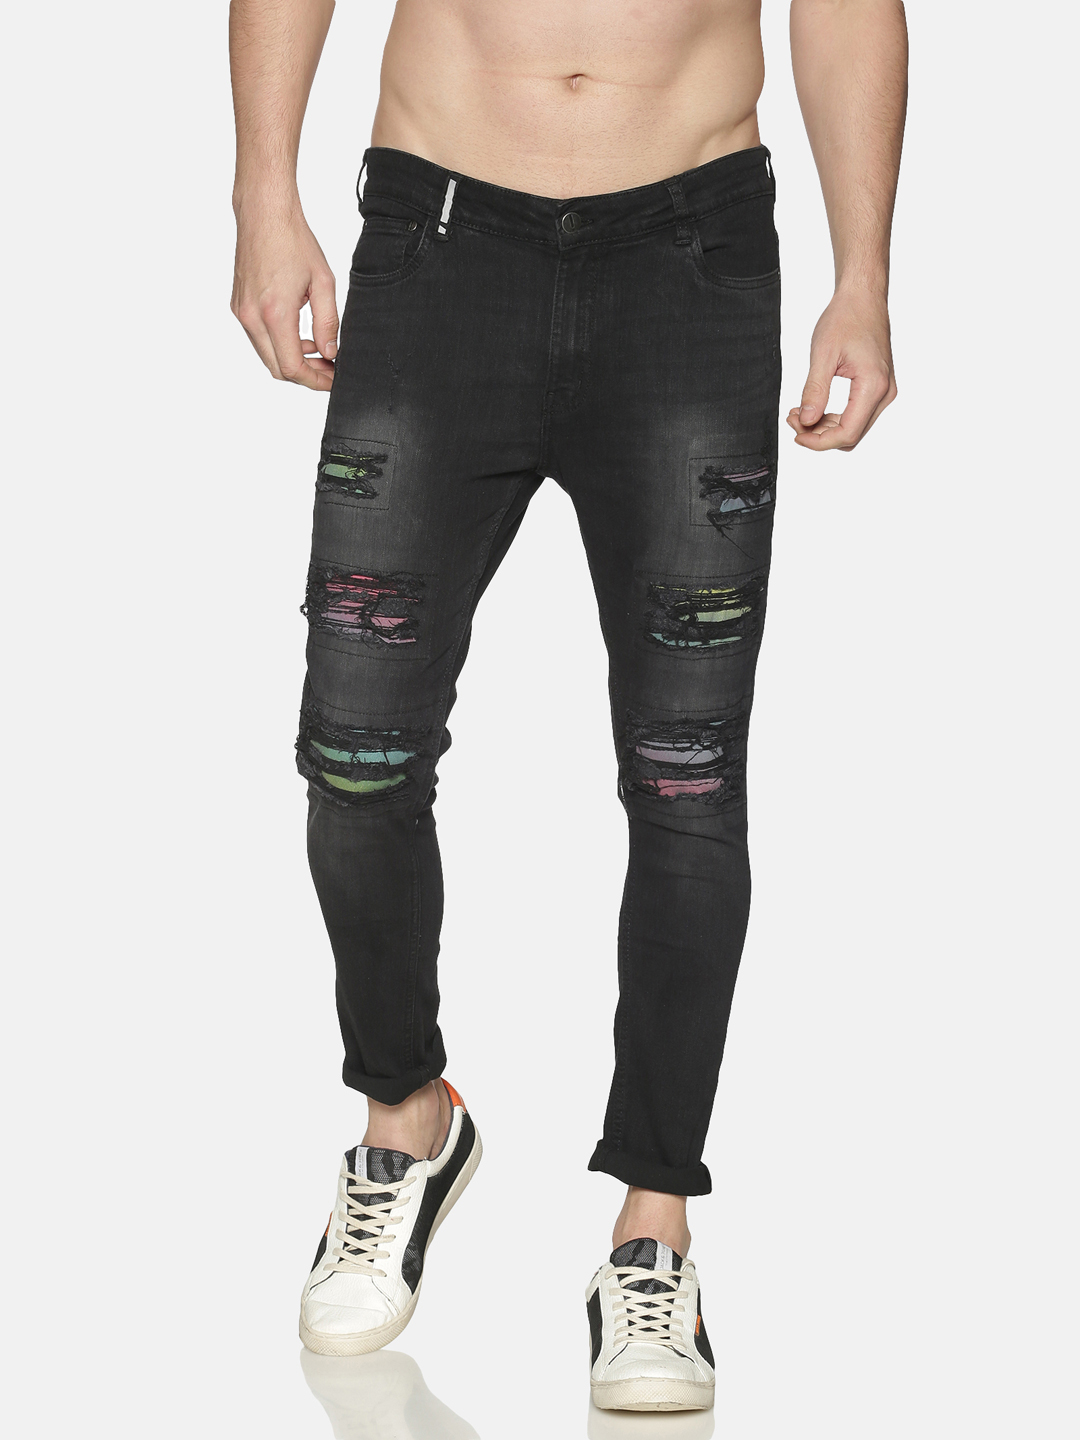 IMPACKT | Impackt Men's Skinny Jeans With Printed Patch & Distressed